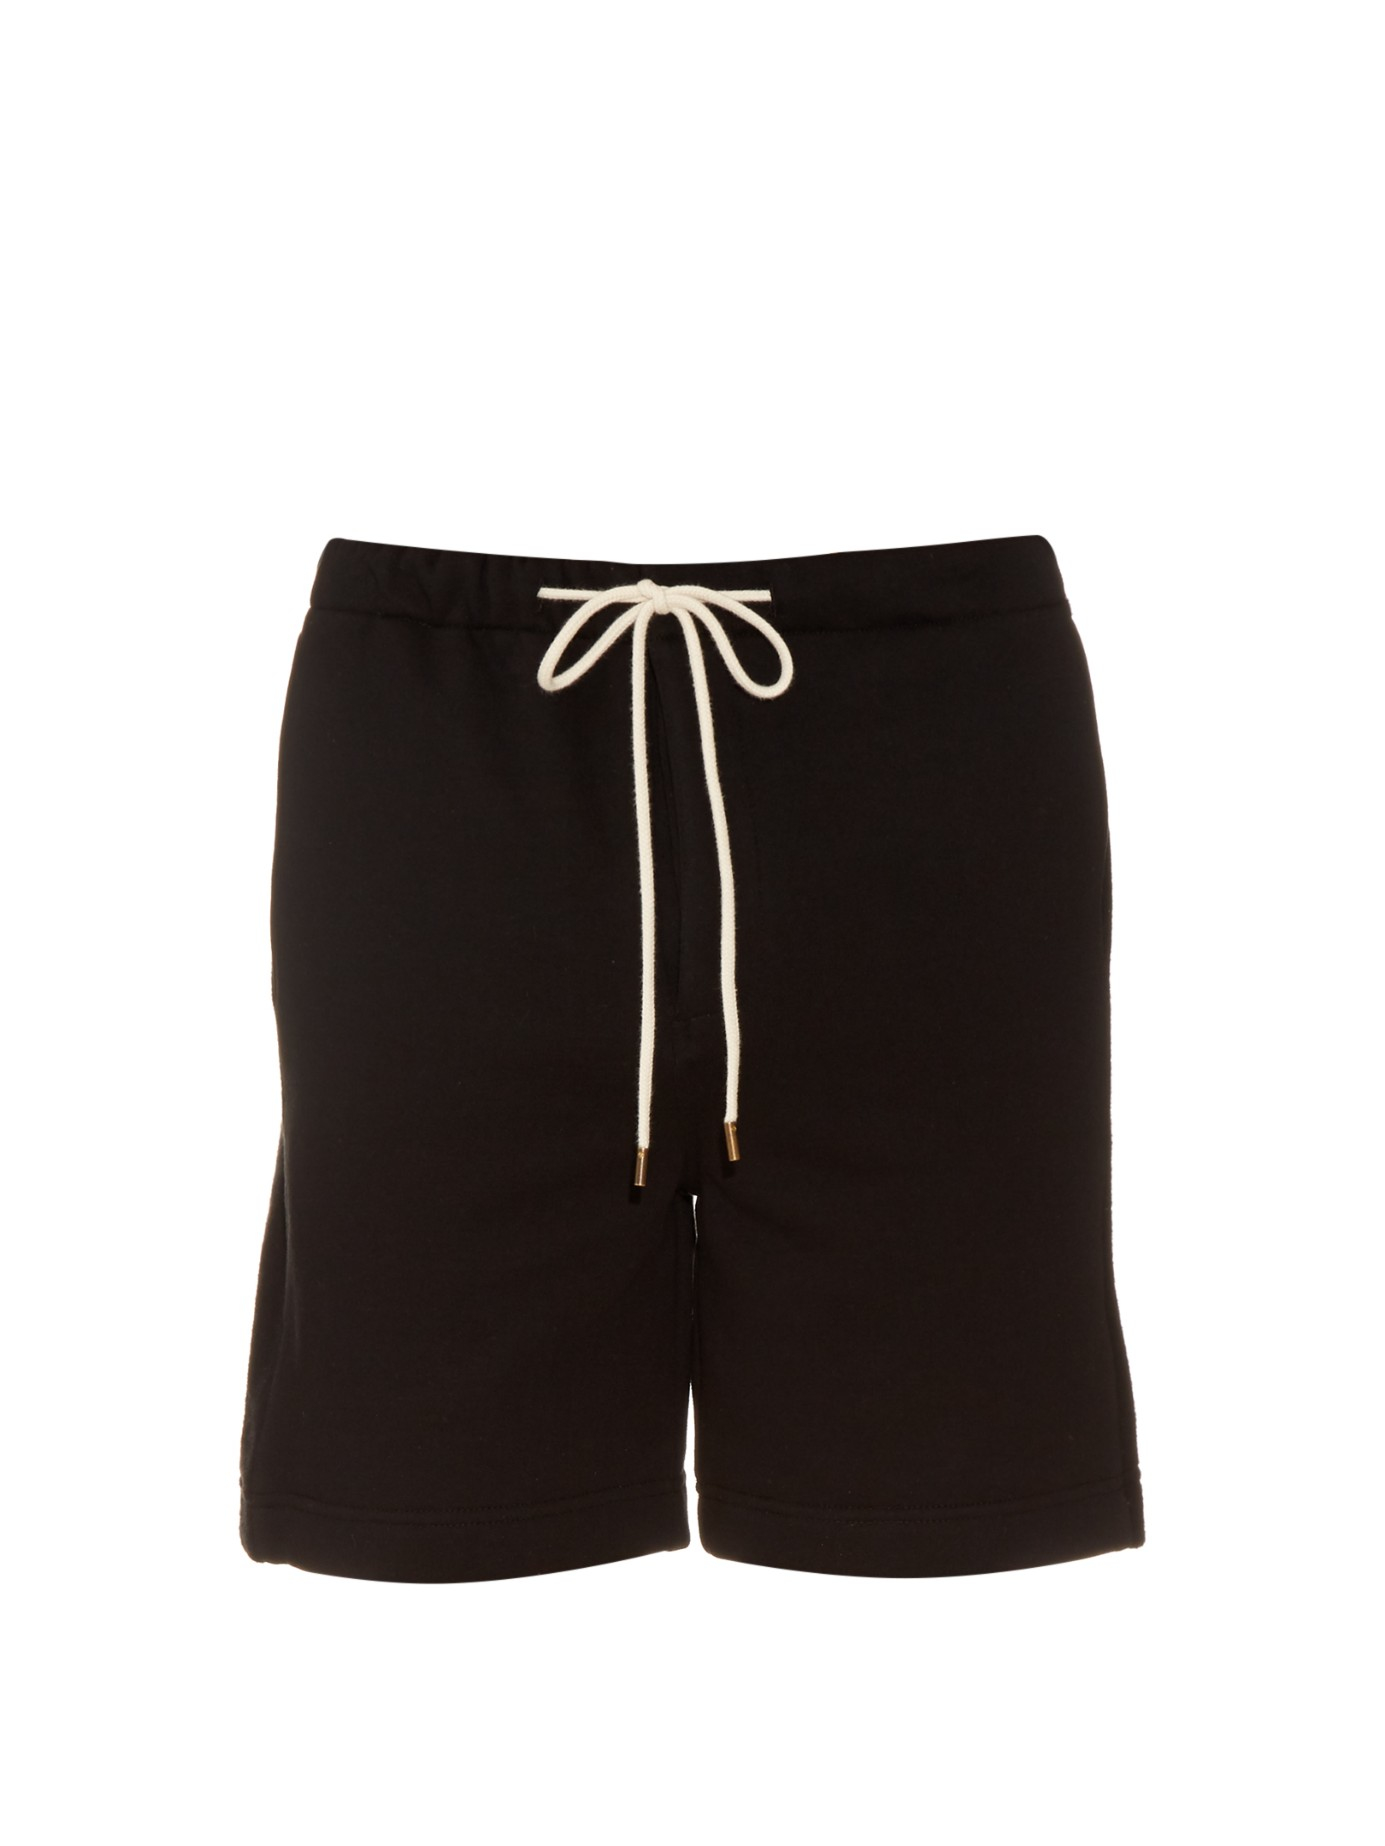 Lyst - Fanmail Fleece-panel Cotton Shorts in Black for Men